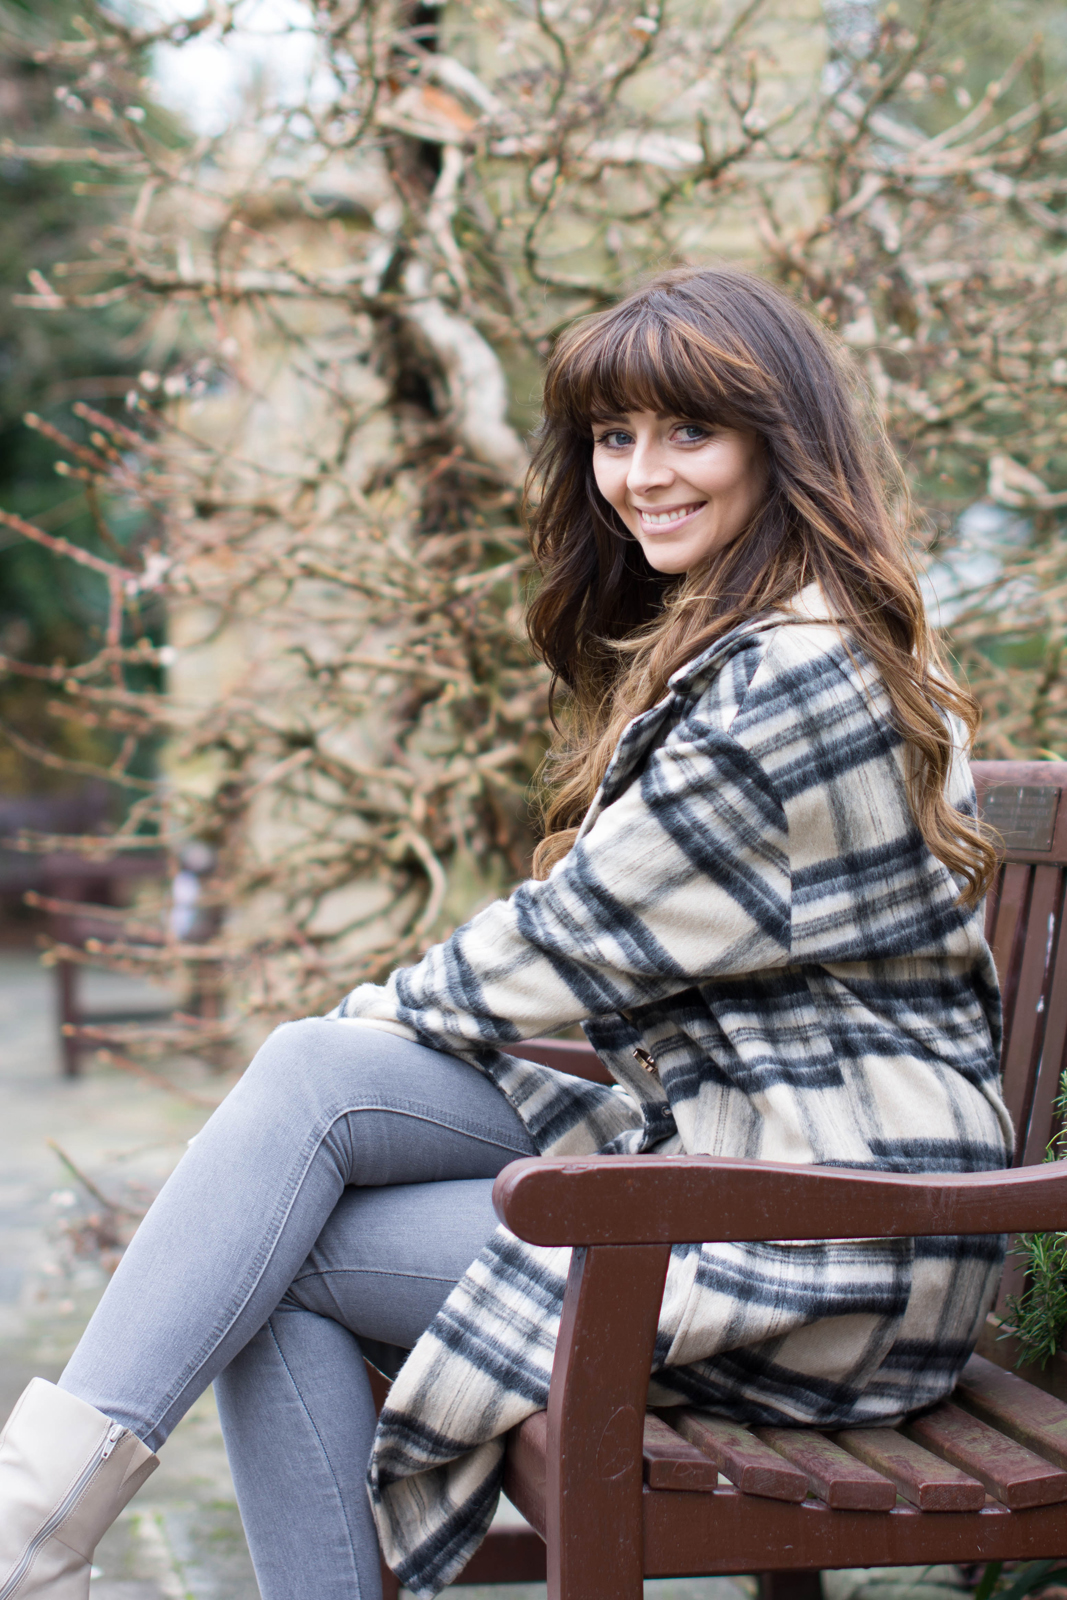 EJSTYLE - River Island brushed check coat, grey skinny jeans, Winter OOTD outfit